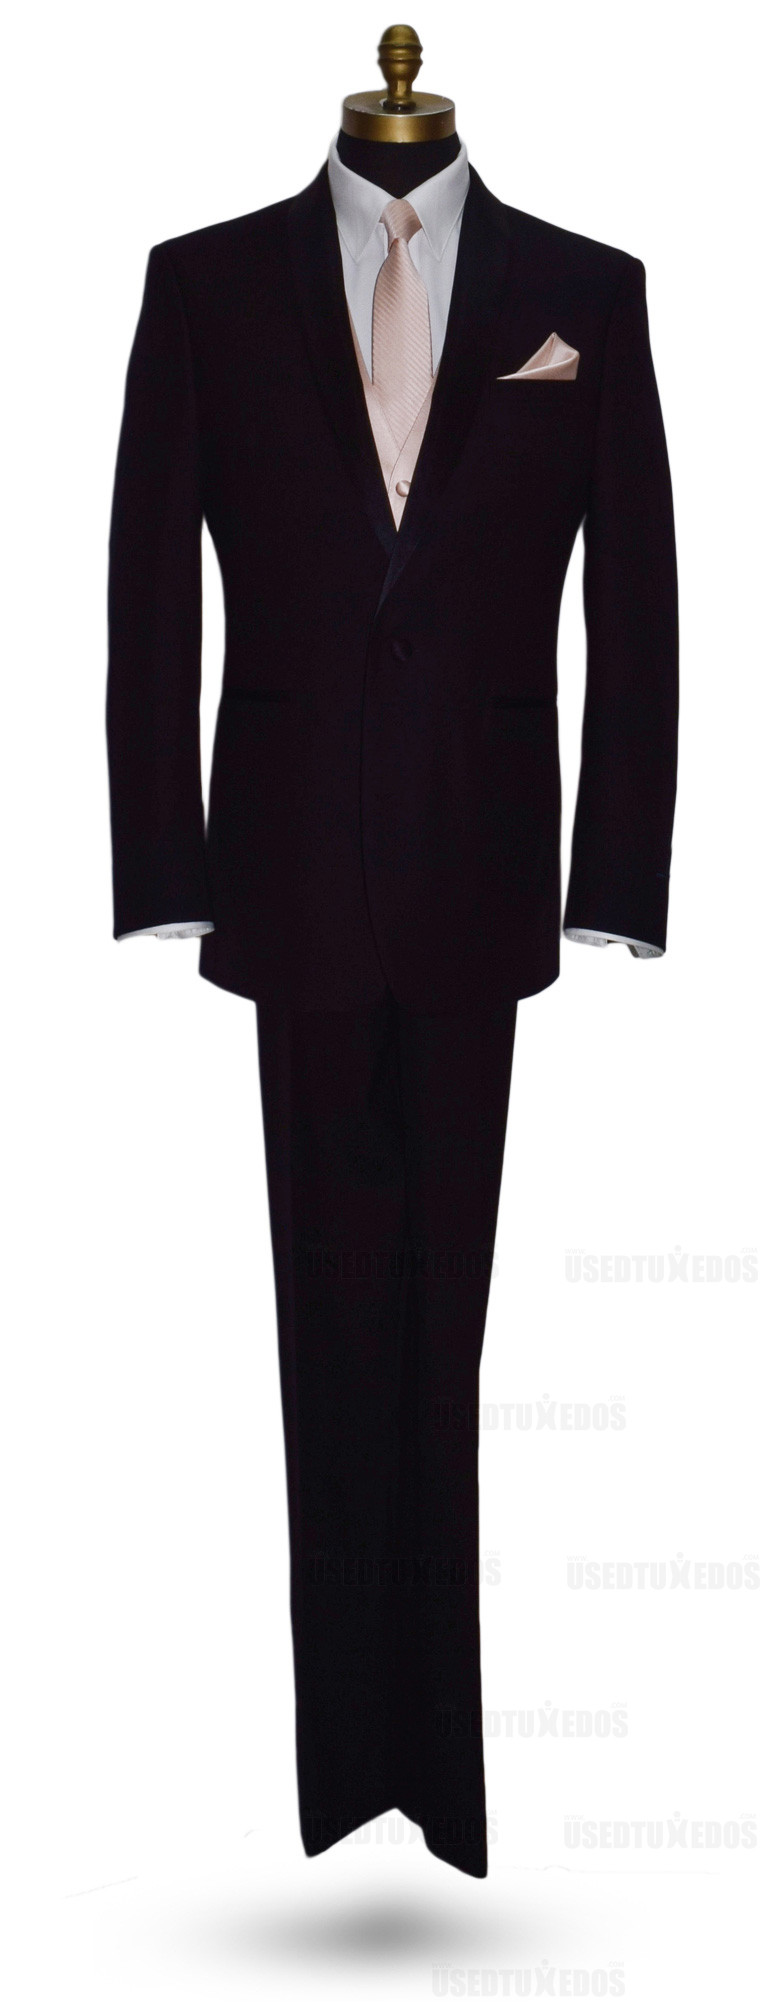 petal long tie and vest with petal pocket handkerchief by San Miguel Formals - full suit profile